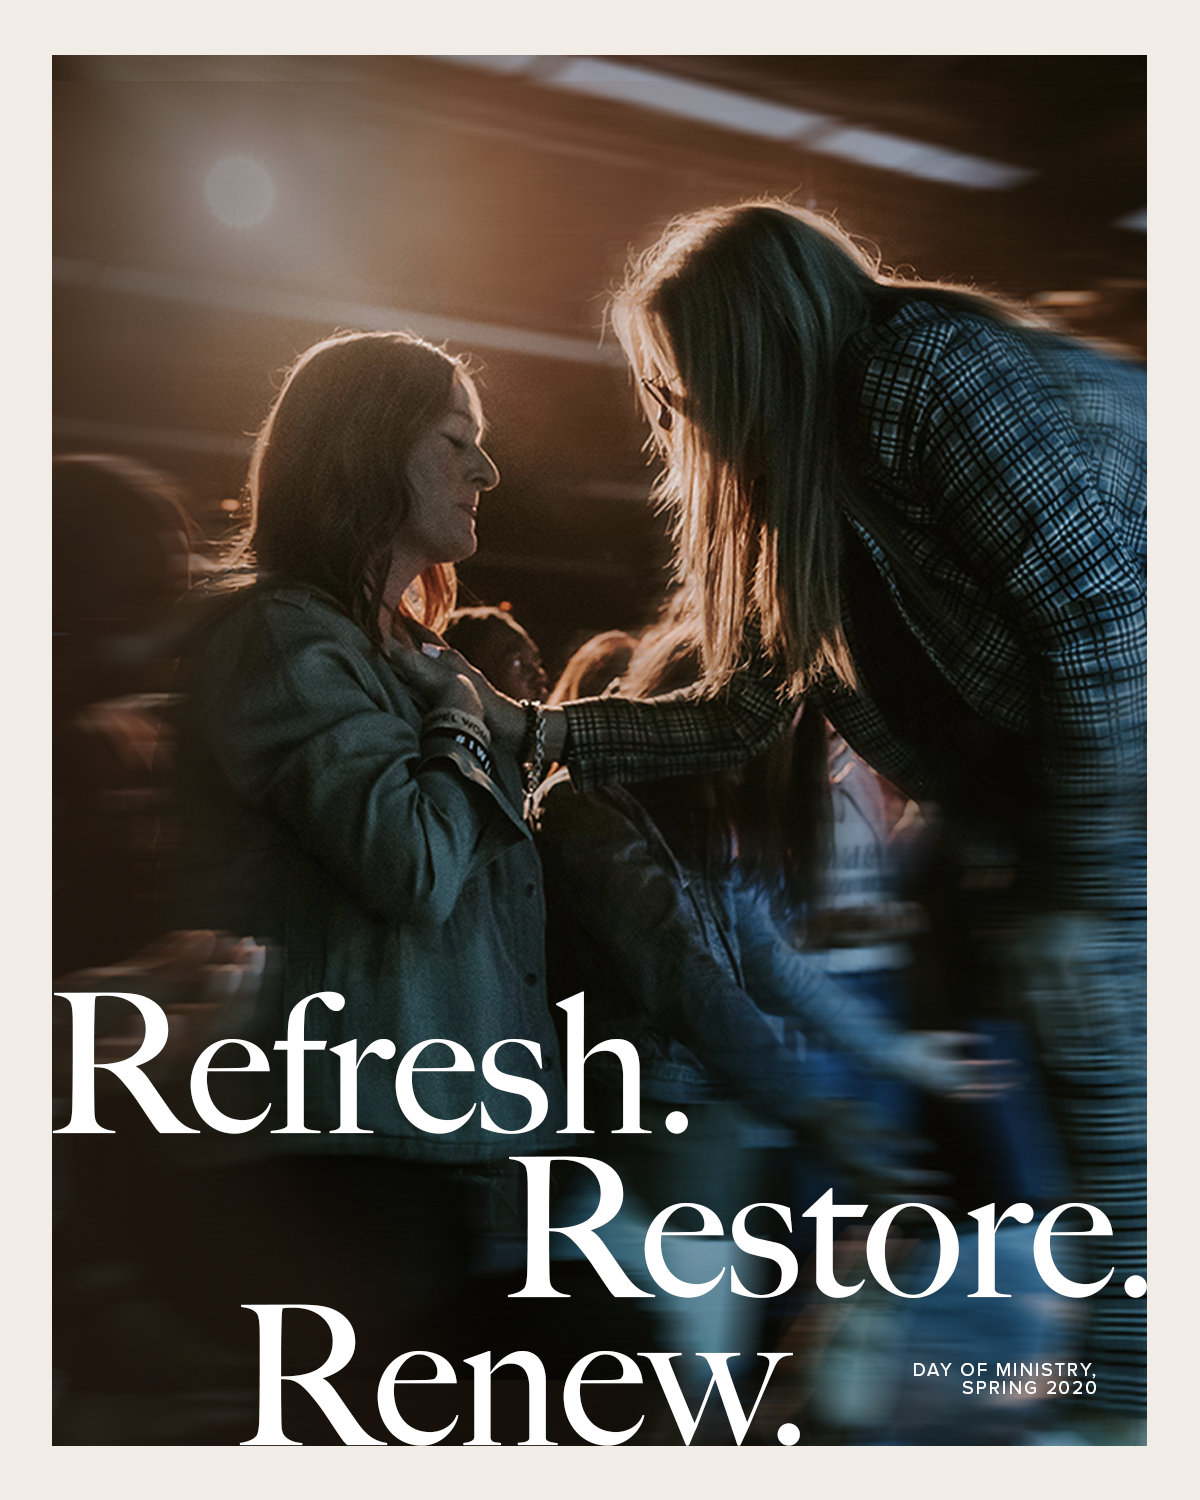 Refresh. Renew. Restore. Day of ministry 2020; woman praying with another.